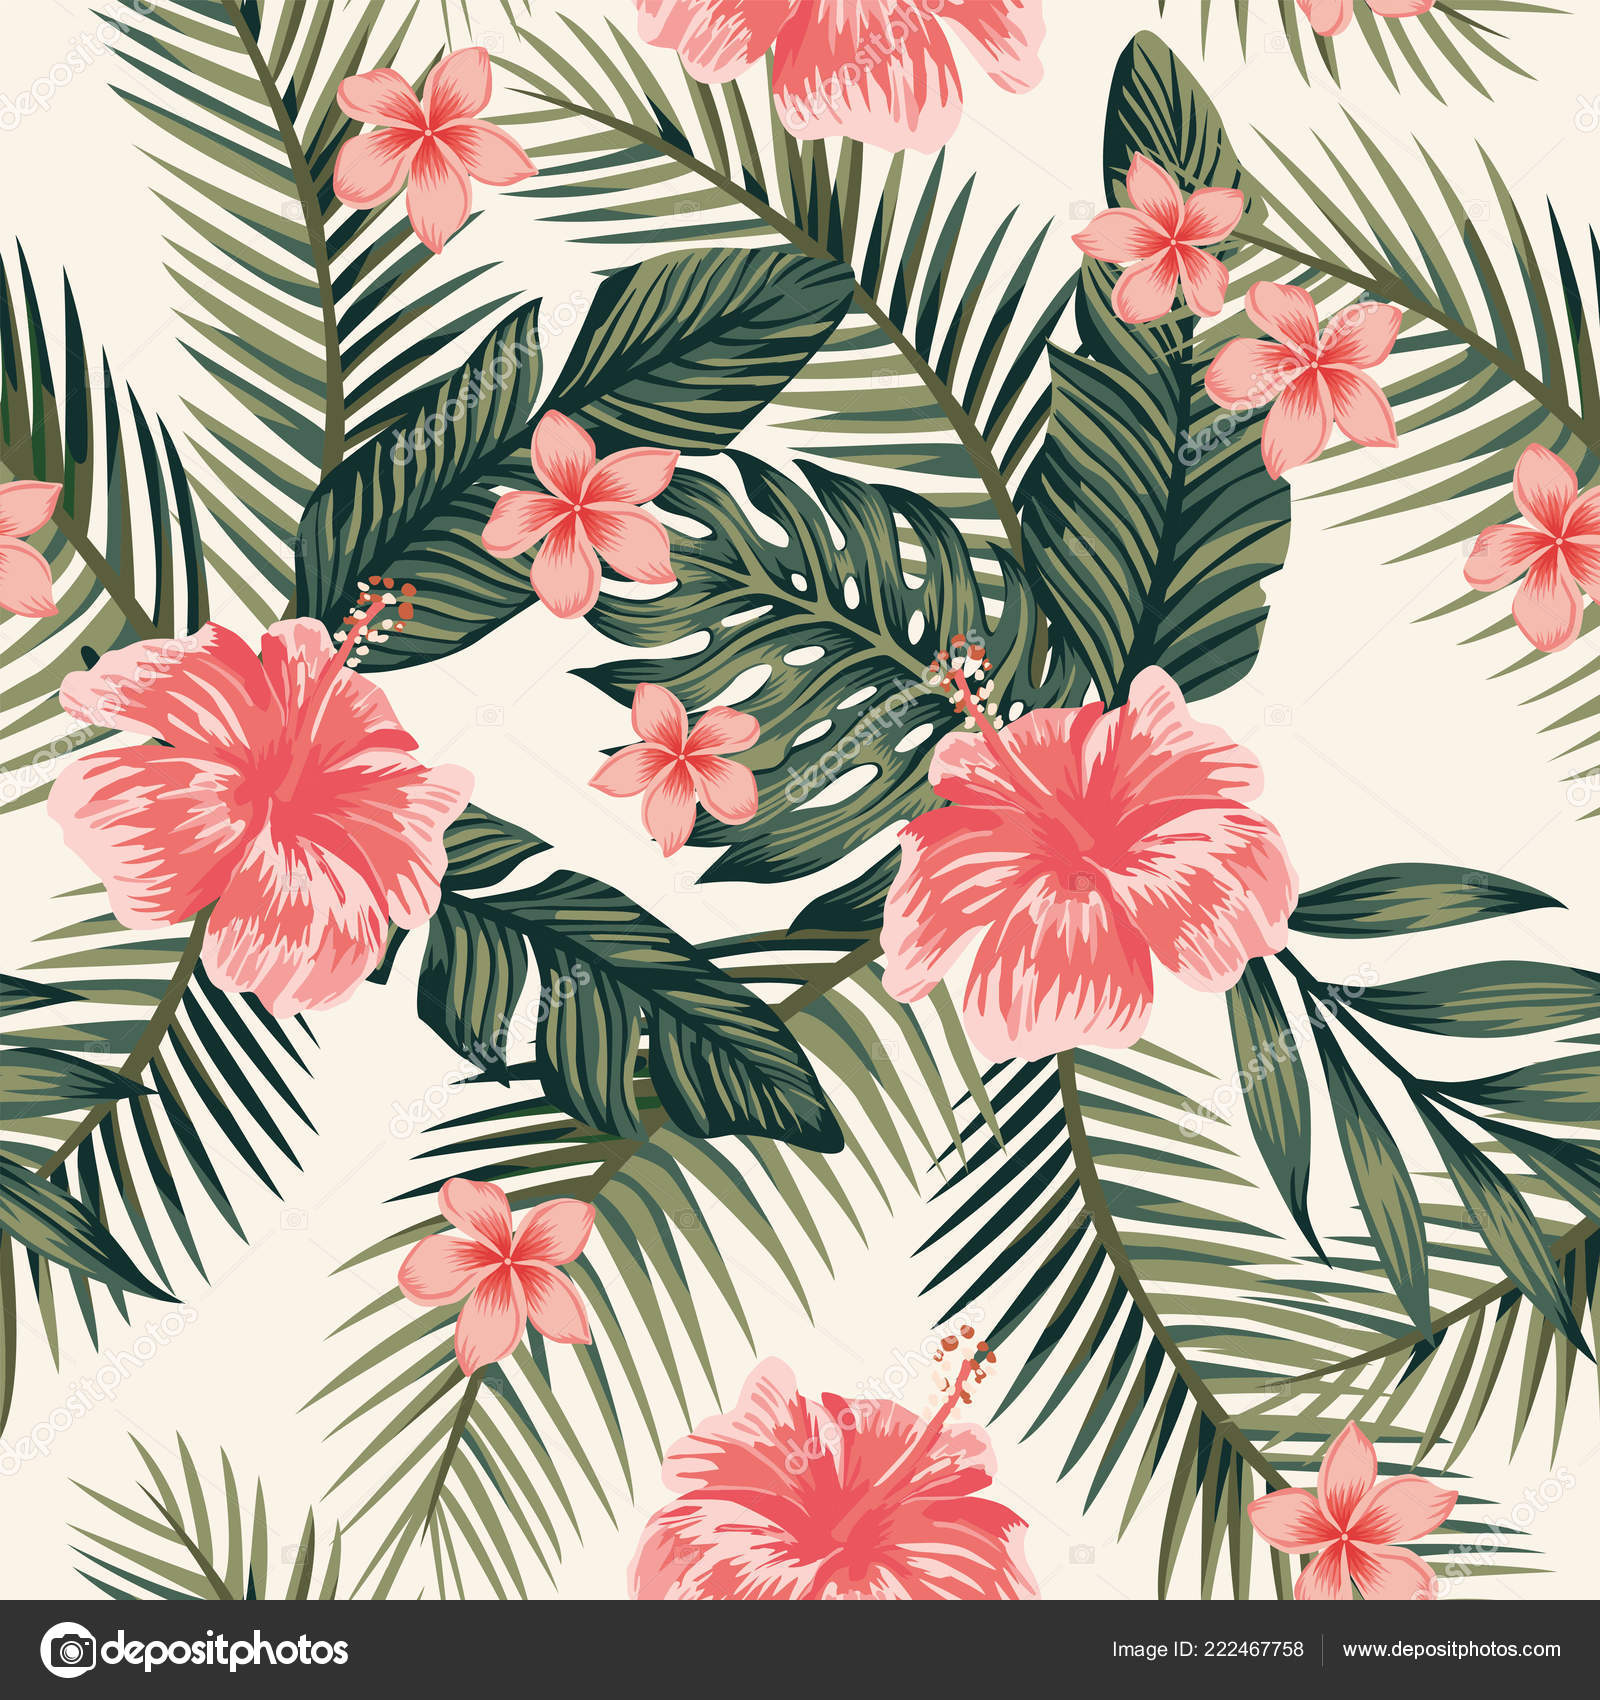 Beach Cheerful Wallpaper Hibiscus Plumeria Tropical Leaves Seamless Vector Pattern Stock Vector C Berry2046 222467758